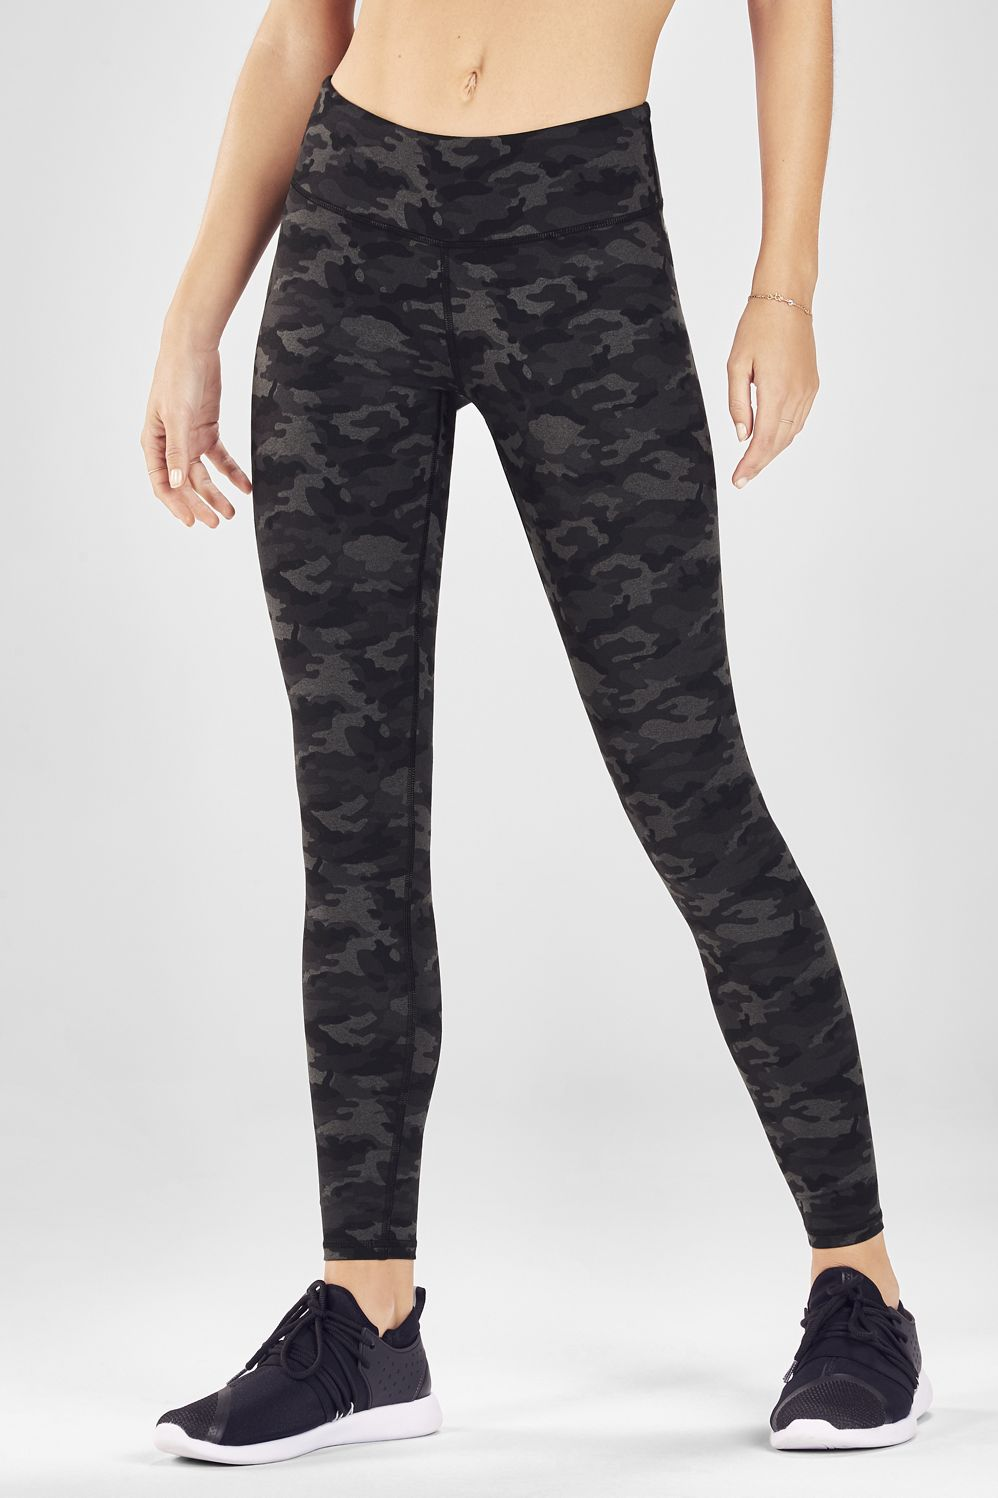 e5ec1218fbf82 Salar Printed Heathered Legging - Grey Heather Camo